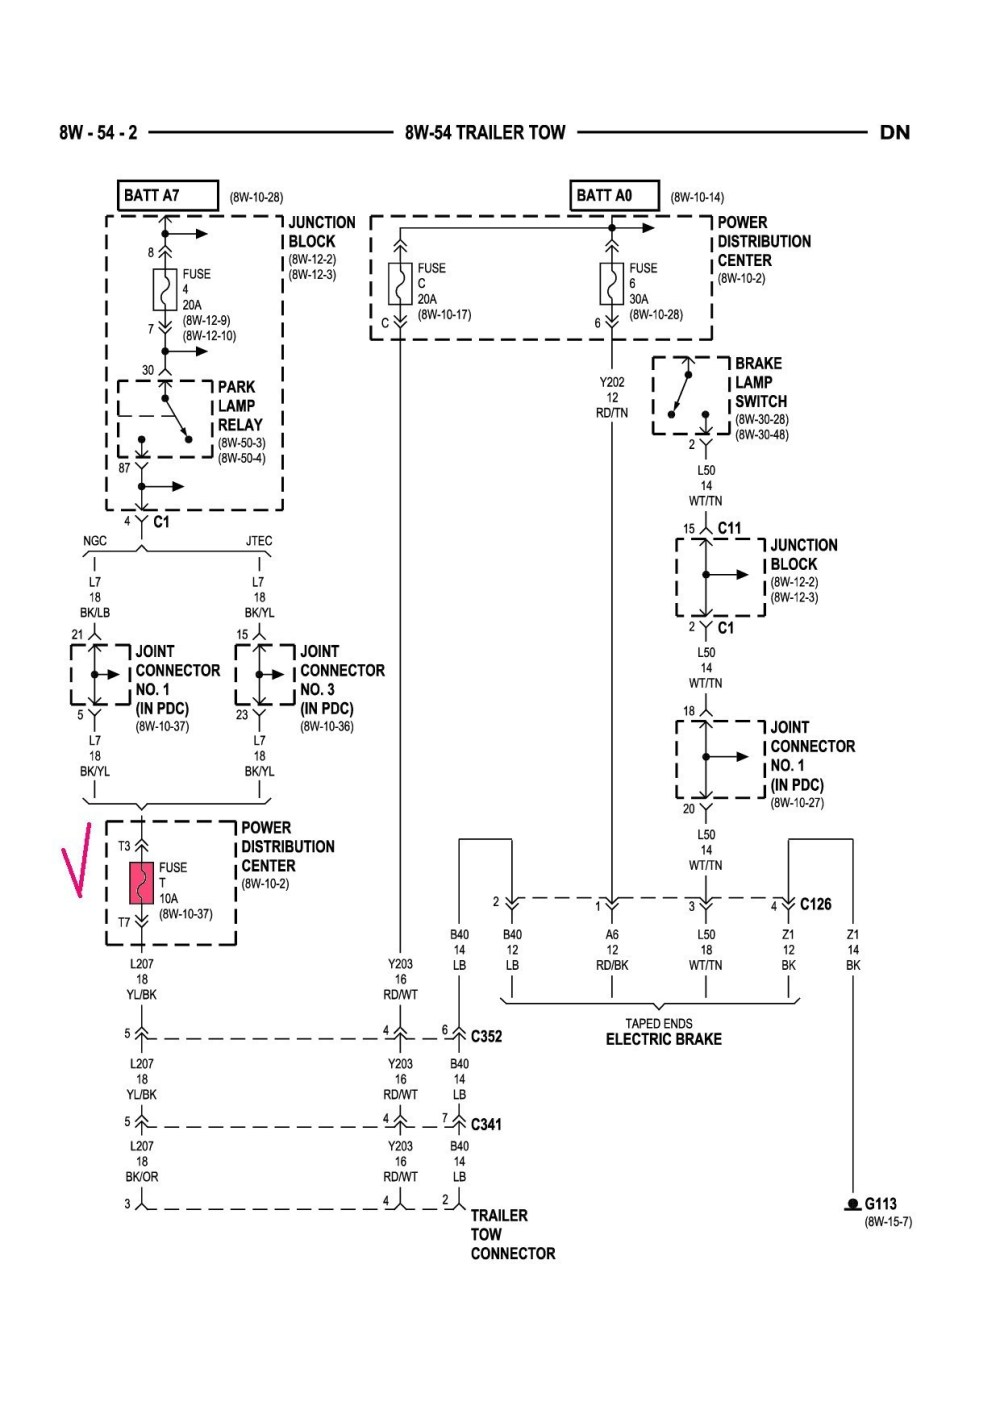 medium resolution of wiring diagram for 03 durango wiring diagram expert 03 durango trailer wiring diagram wiring diagram paper